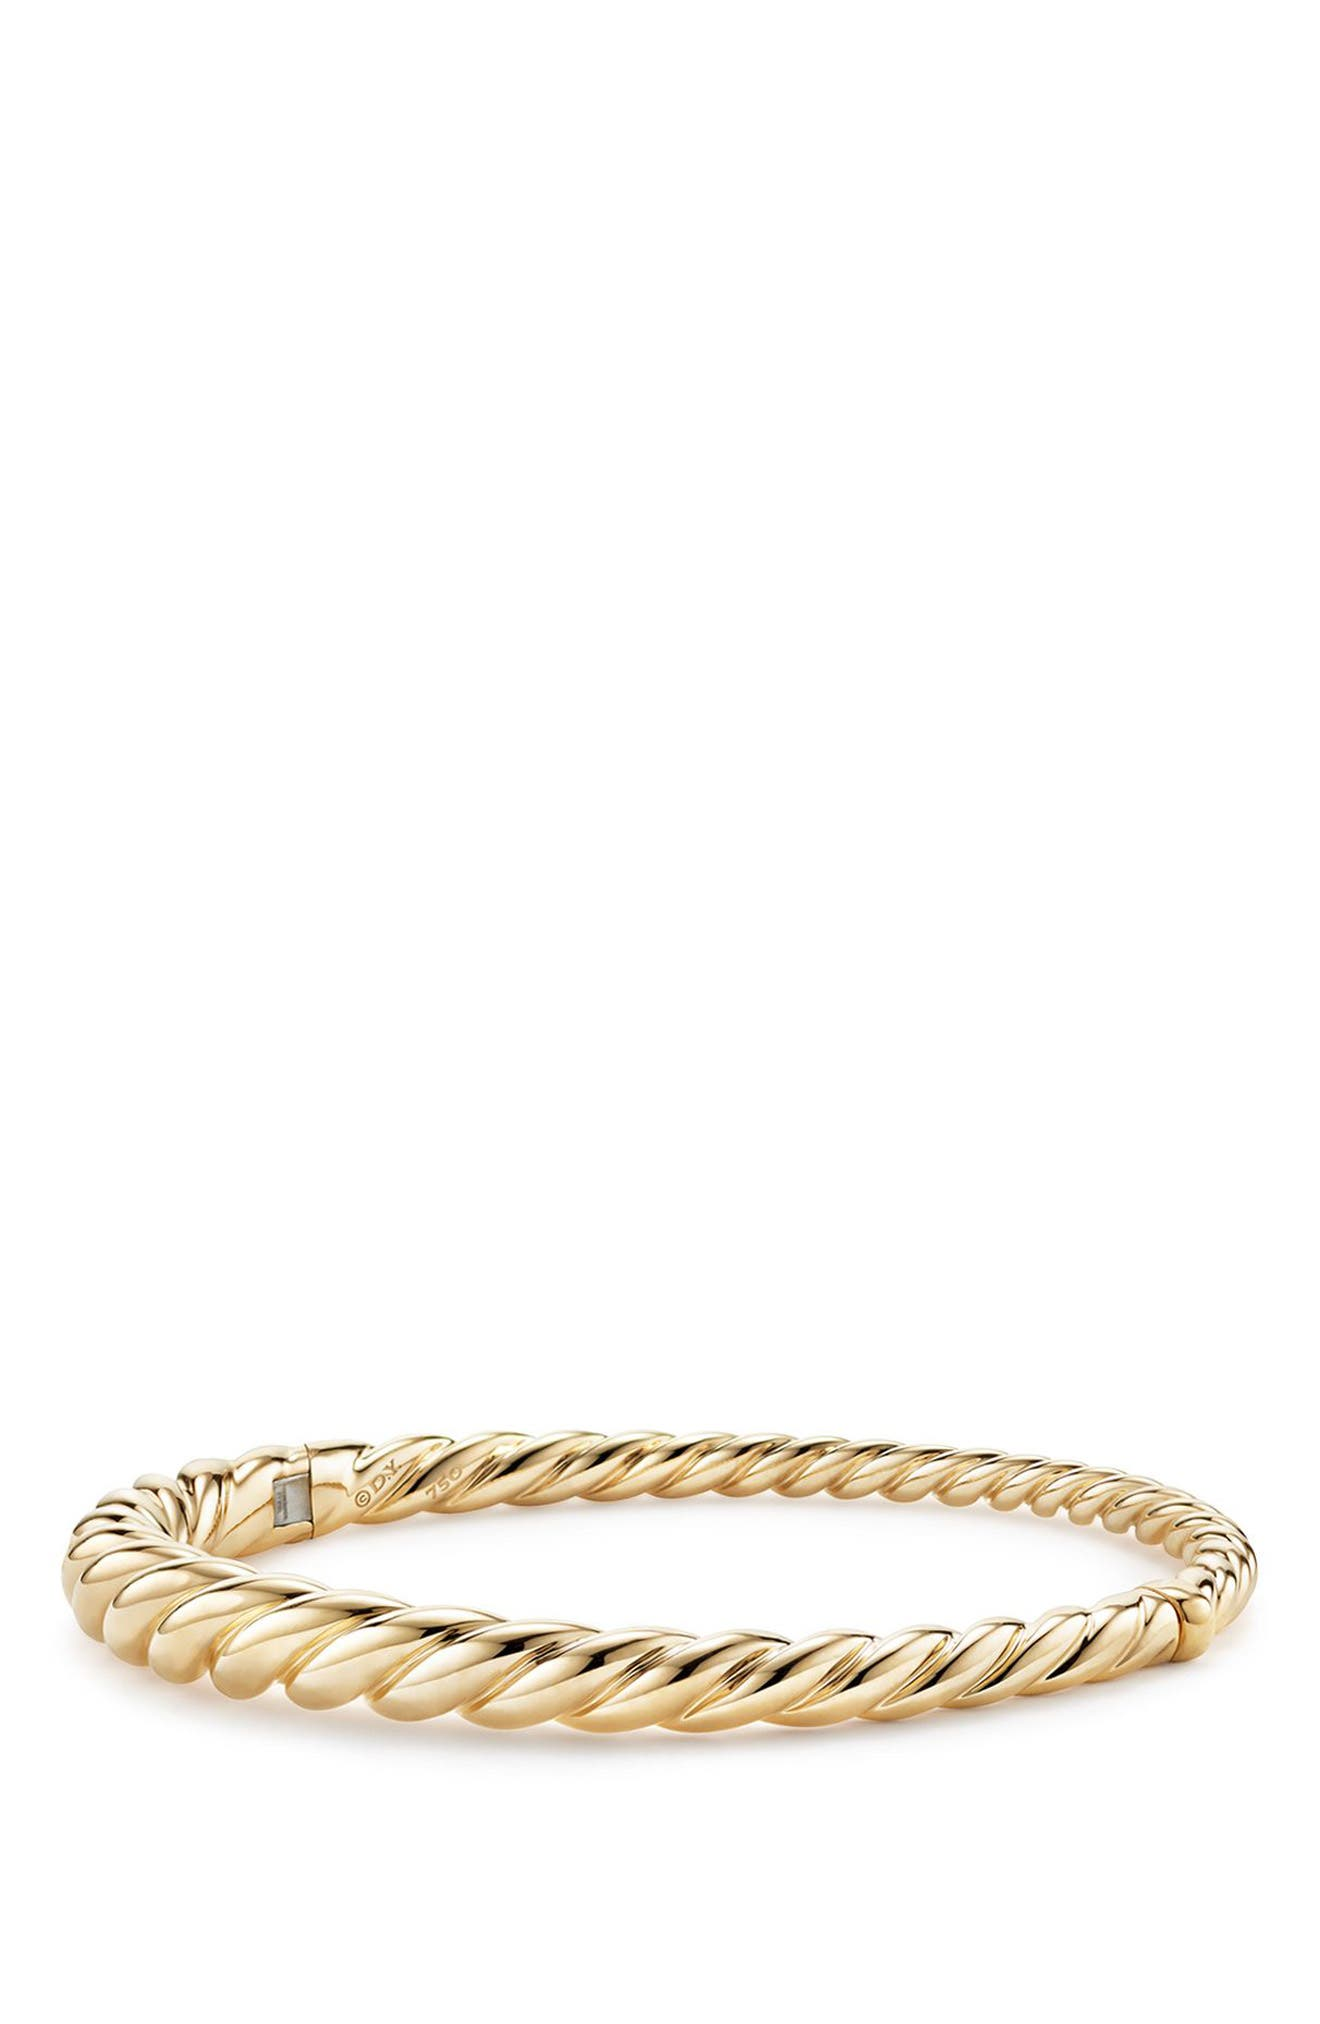 Pure Form Cable Bracelet in 18K Gold, 6mm,                             Main thumbnail 1, color,                             YELLOW GOLD